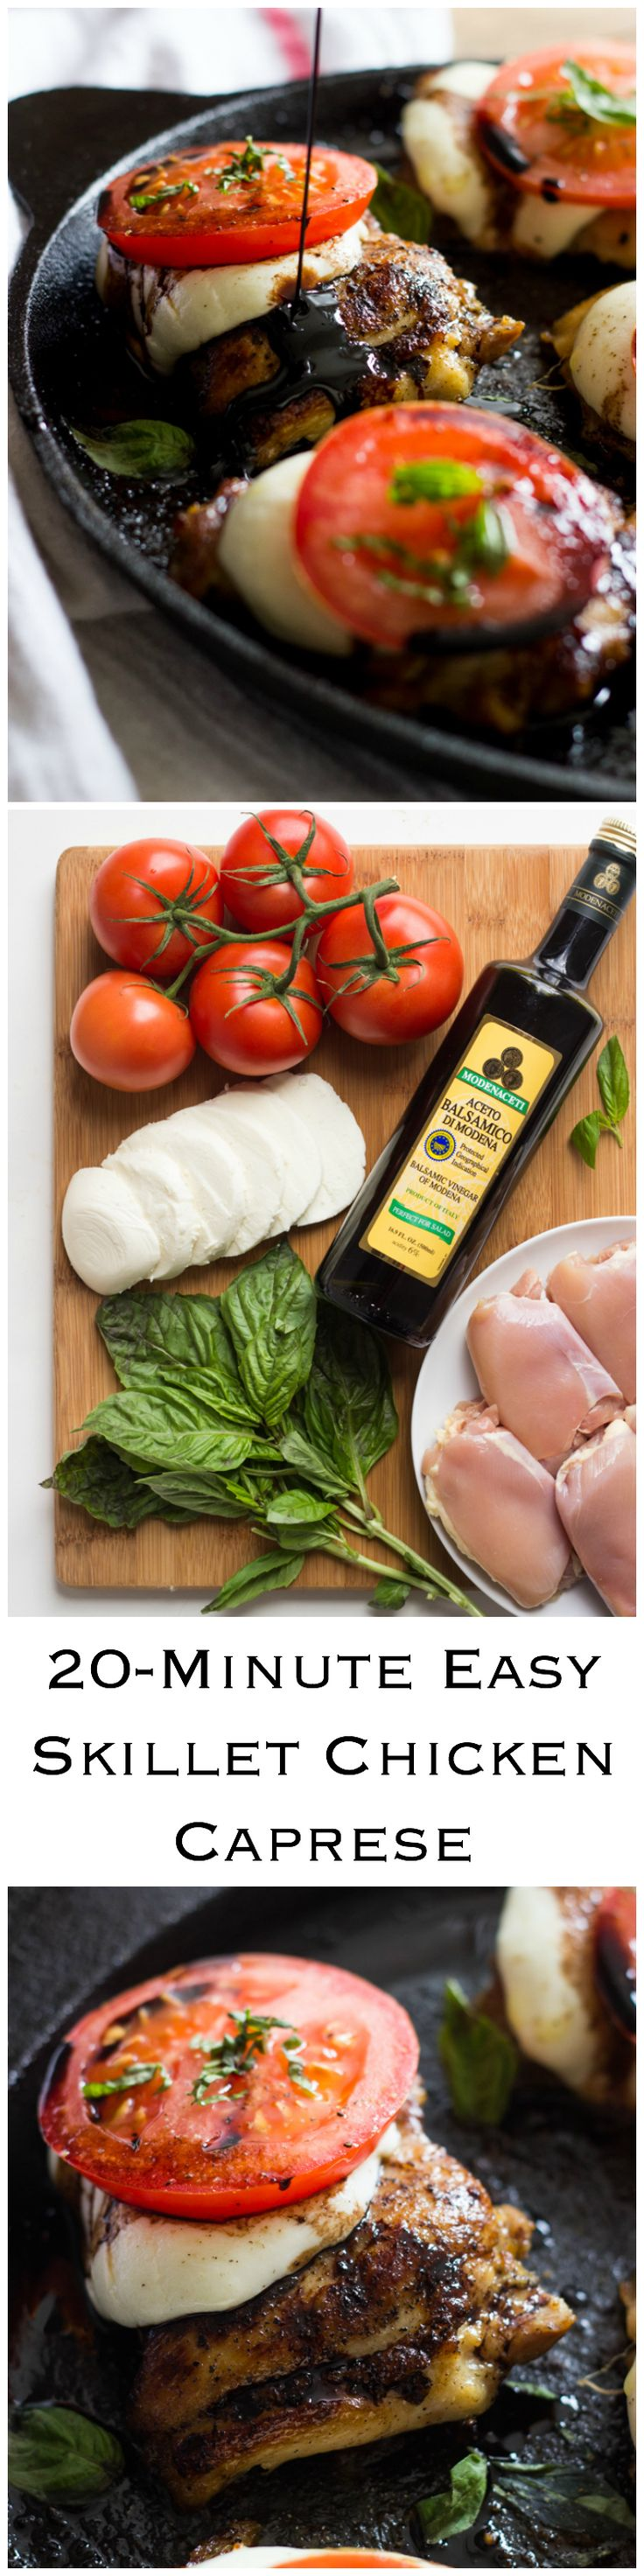 20-Minute Easy Skillet Chicken Caprese - juicy, tender, chicken thighs topped with mozzarella, tomato, basil and balsamic reduction. Effortless and delicious chicken dinner!   littlebroken.com @littlebroken